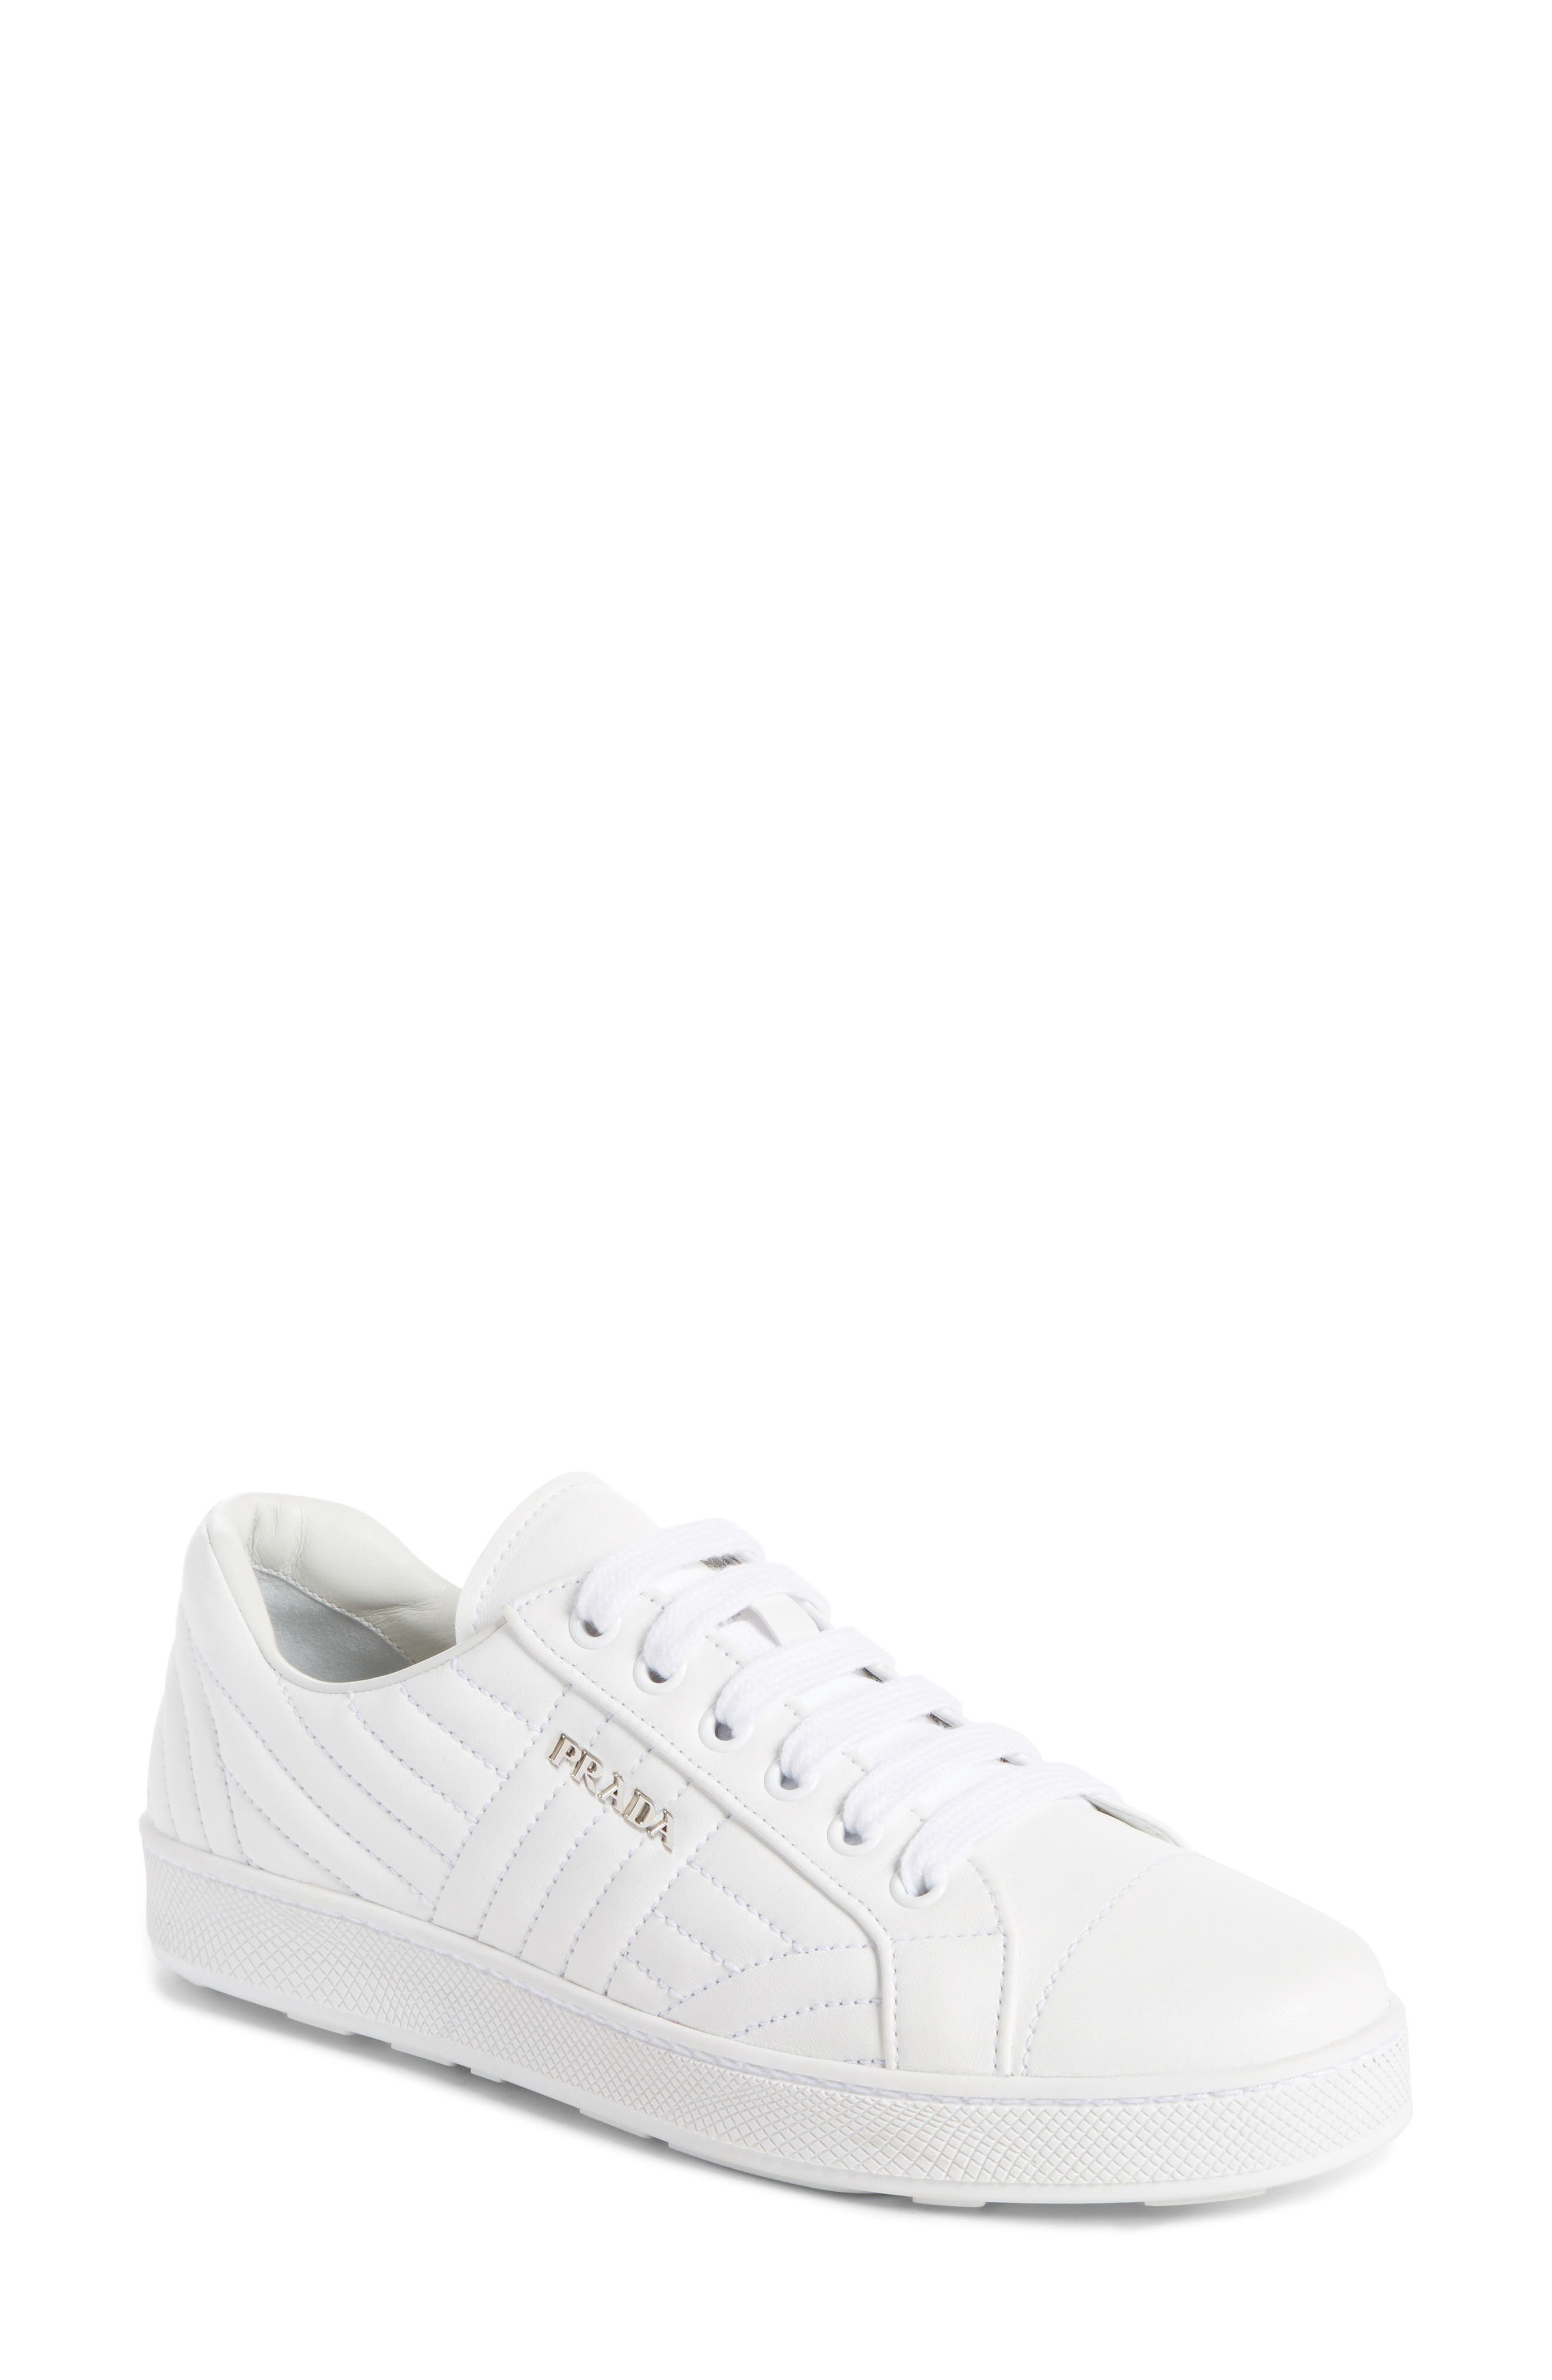 Alternate Image 1 Selected - Prada Quilted Leather Sneaker (Women)